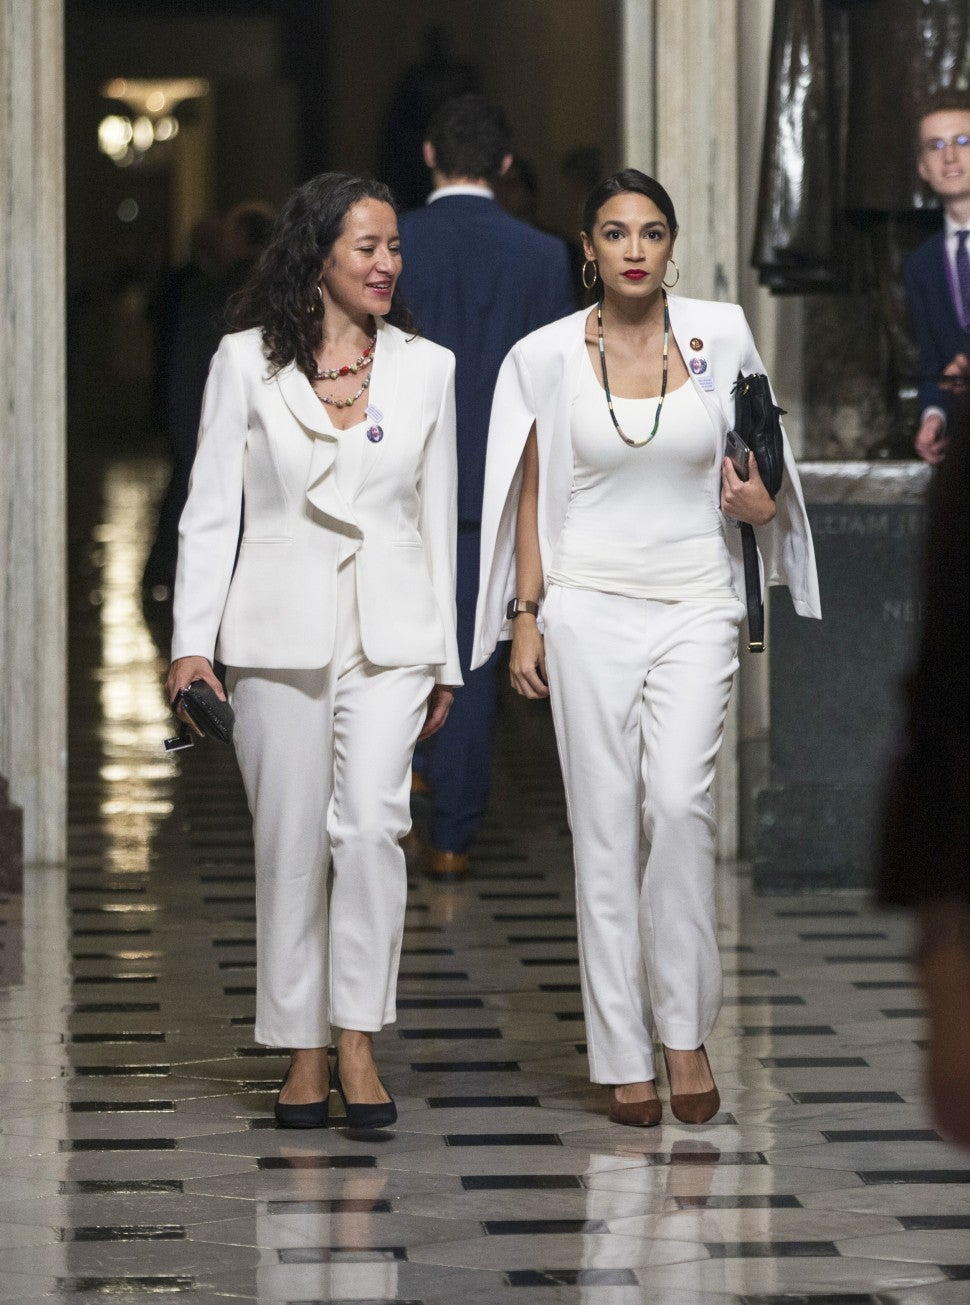 Alexandria Ocasio-Cortez in white cape jacket at State of the Union